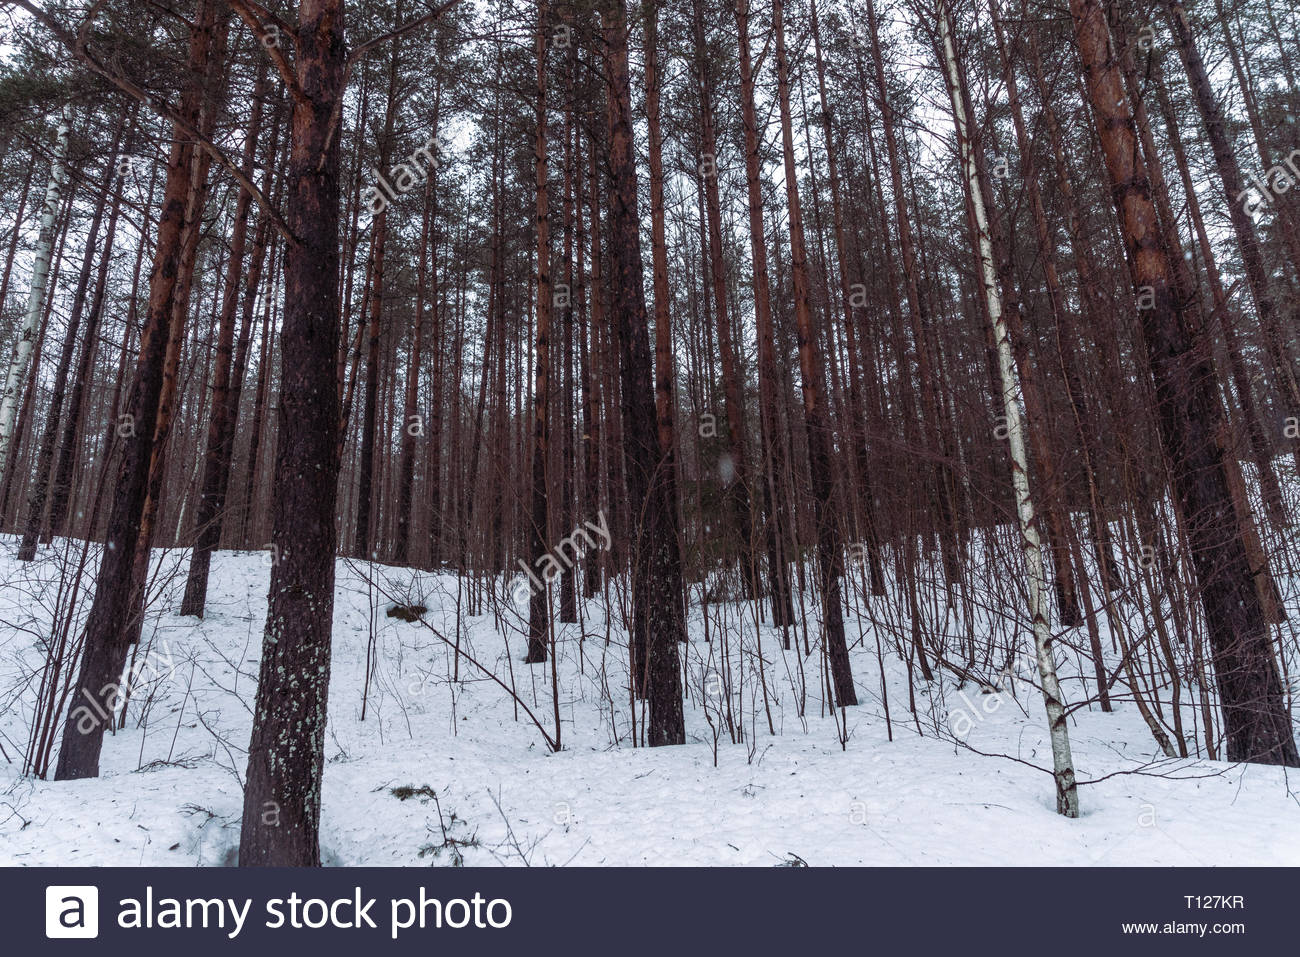 Finland forest - Stock Image